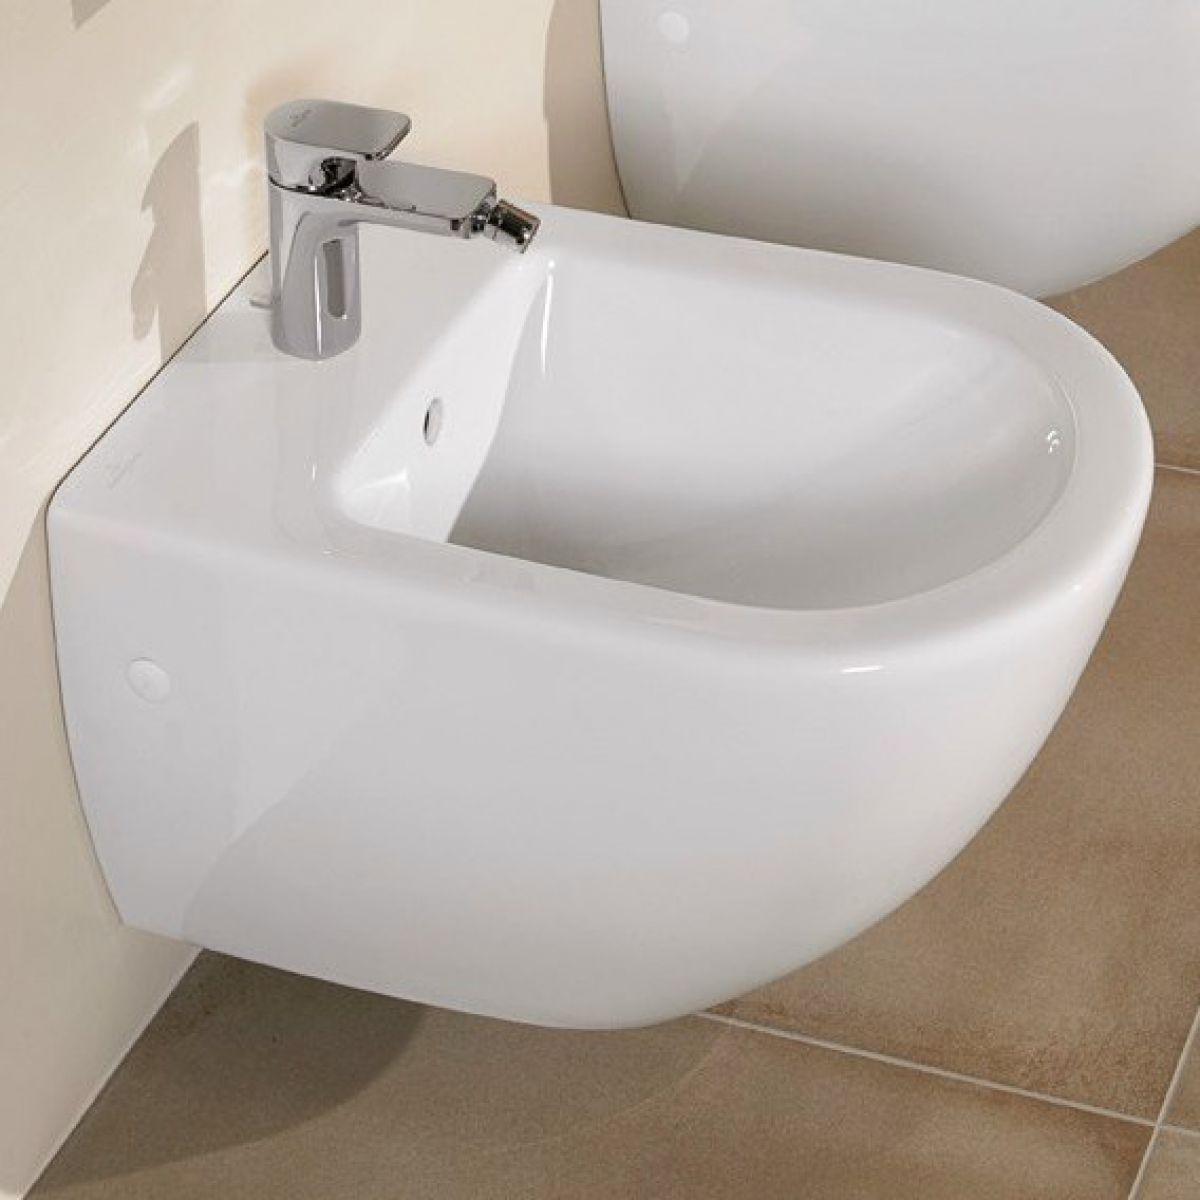 Villeroy & Boch Subway(Soho) Wall Mounted Bidet